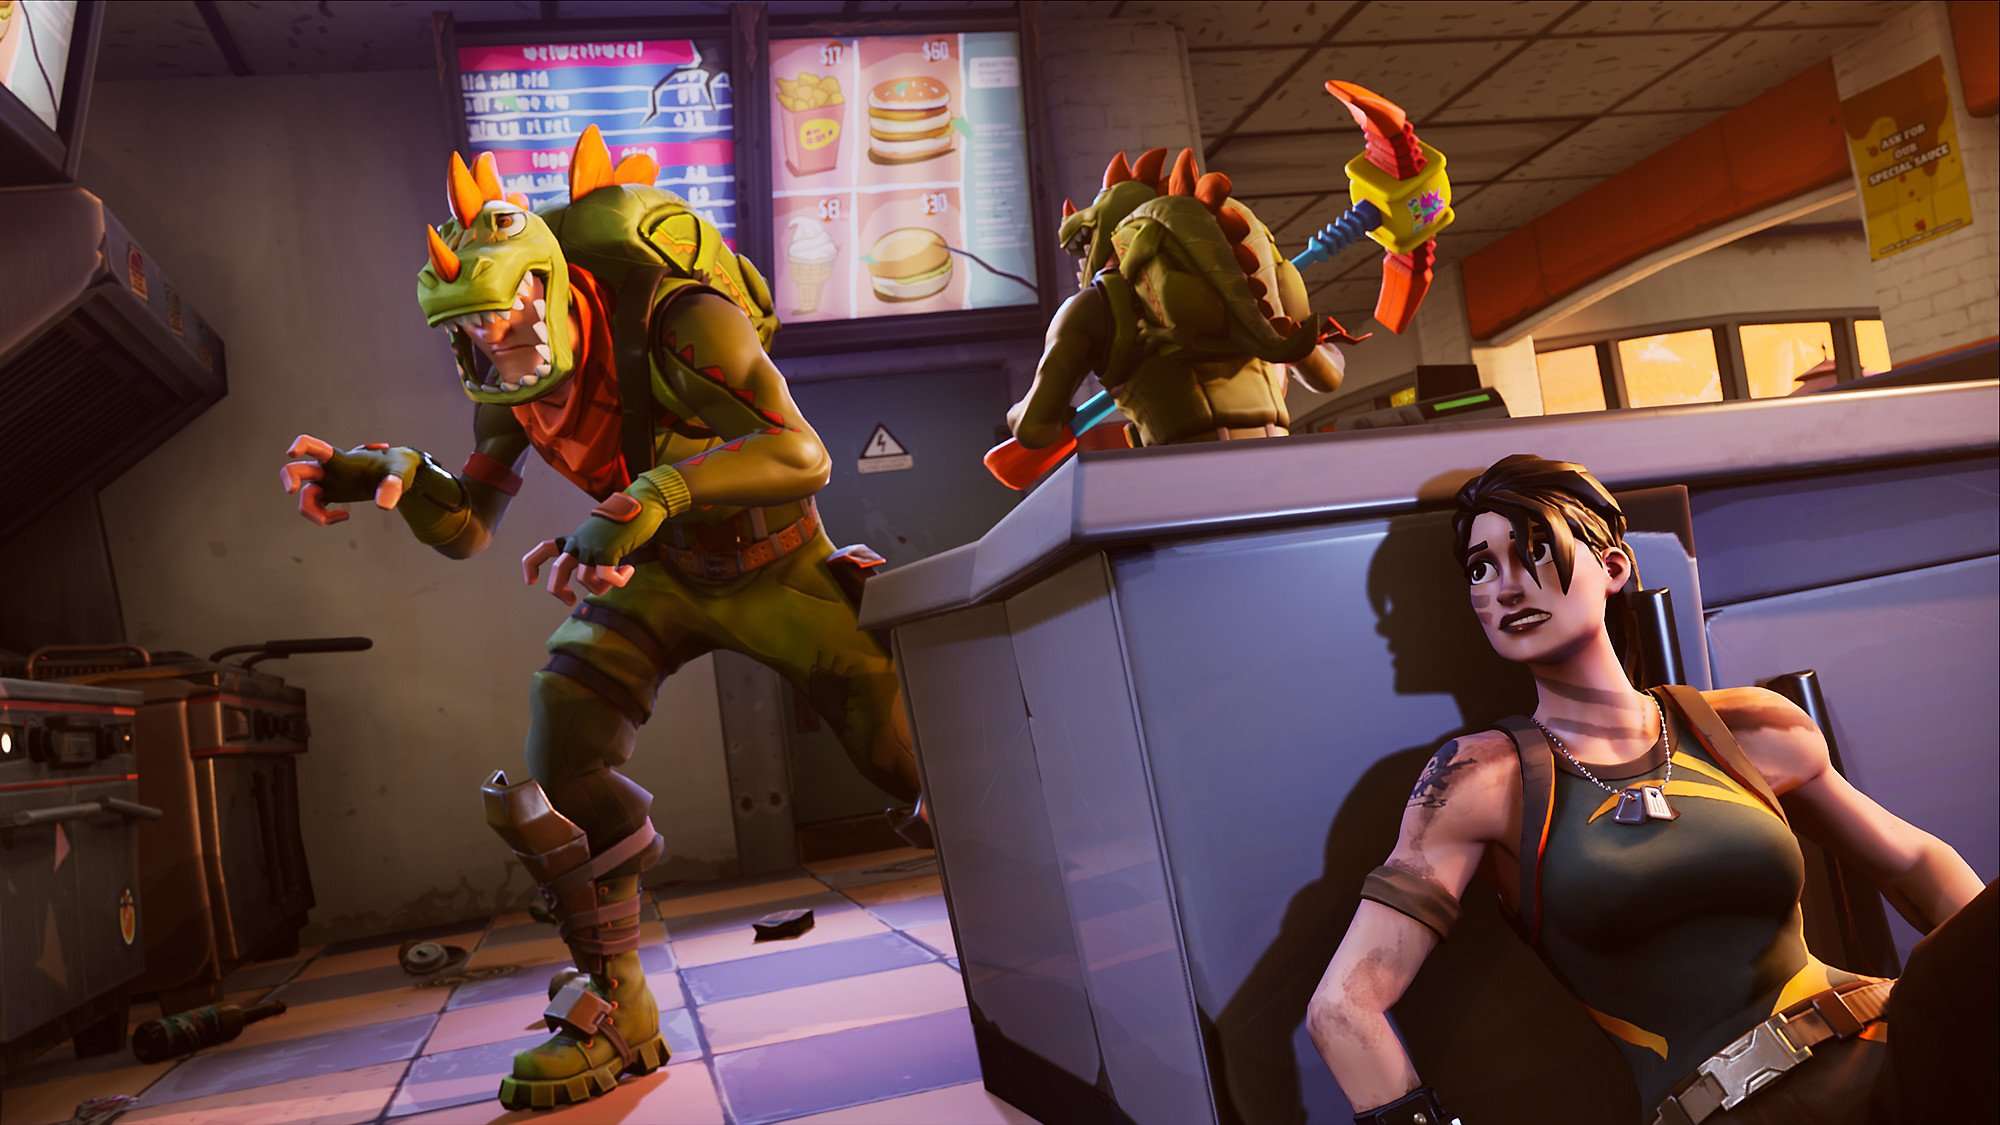 The class-action isn't the first lawsuit that Epic Games has battled over their most popular property, Fortnite.